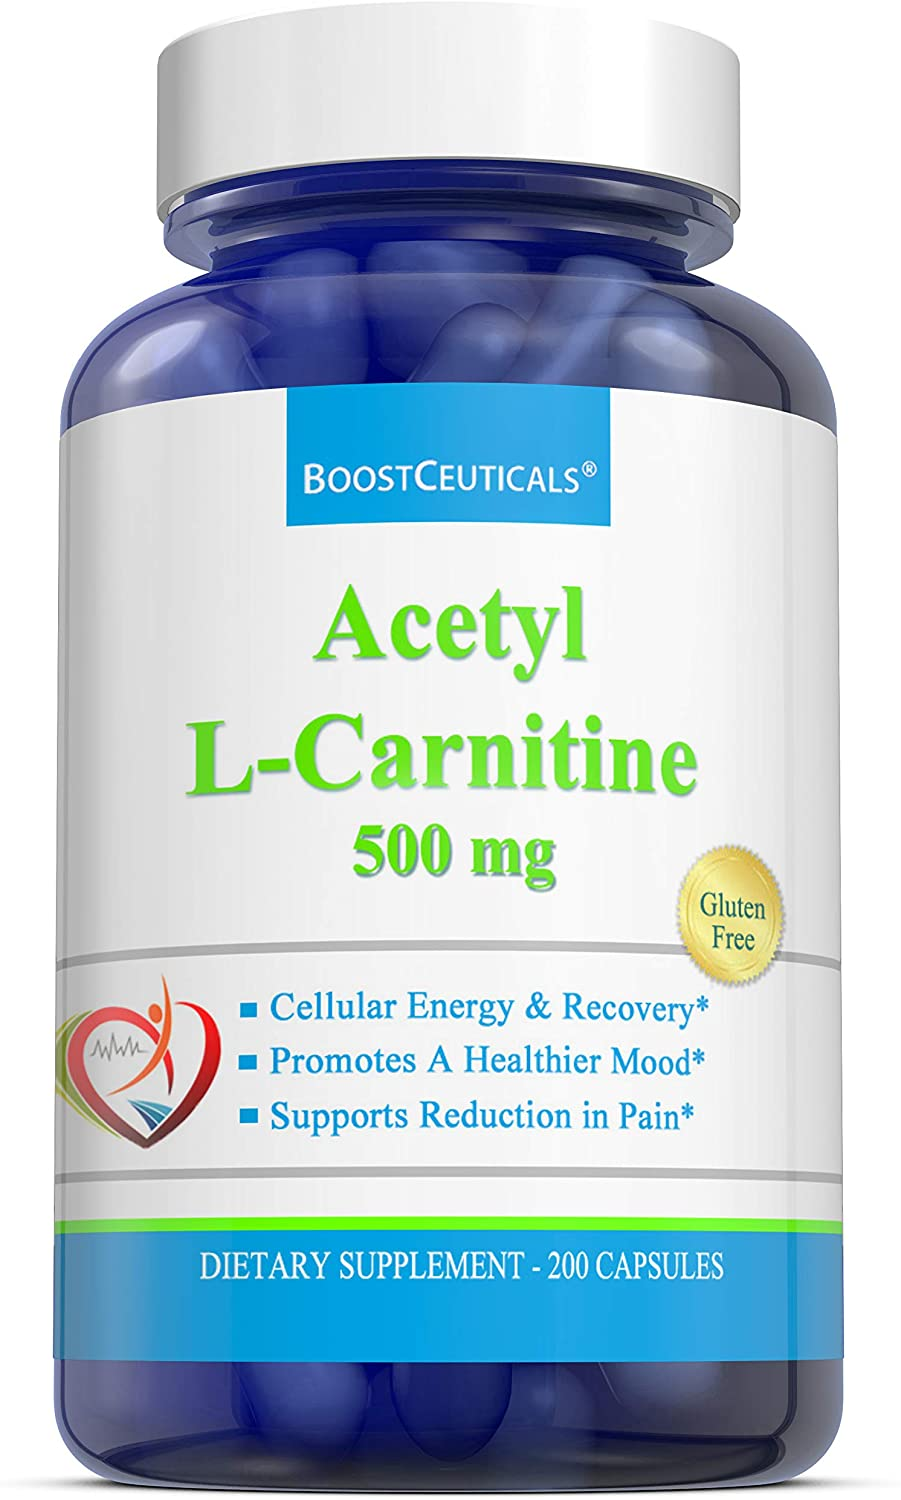 Acetyl L Carnitine 1000 mg Daily Dose 200 Capsules - No Additives Non-GMO Gluten Free Supplement - Pure Natural L Carnitine 500mg Capsules by BoostCeuticals